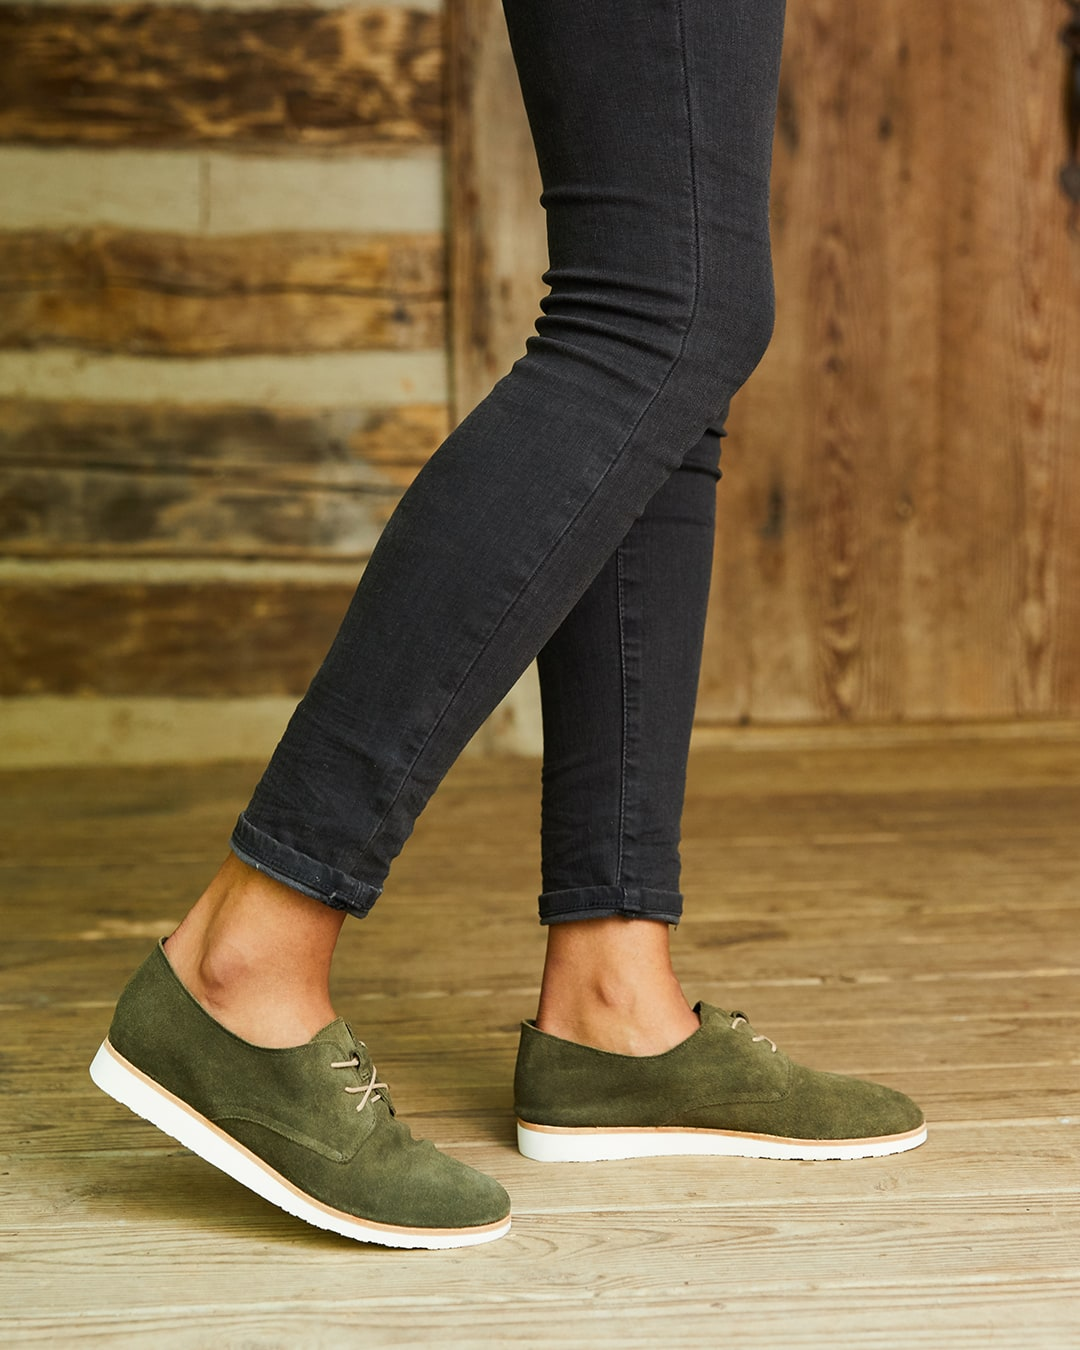 Nisolo Women's Sedona Travel Derby in Forest Green